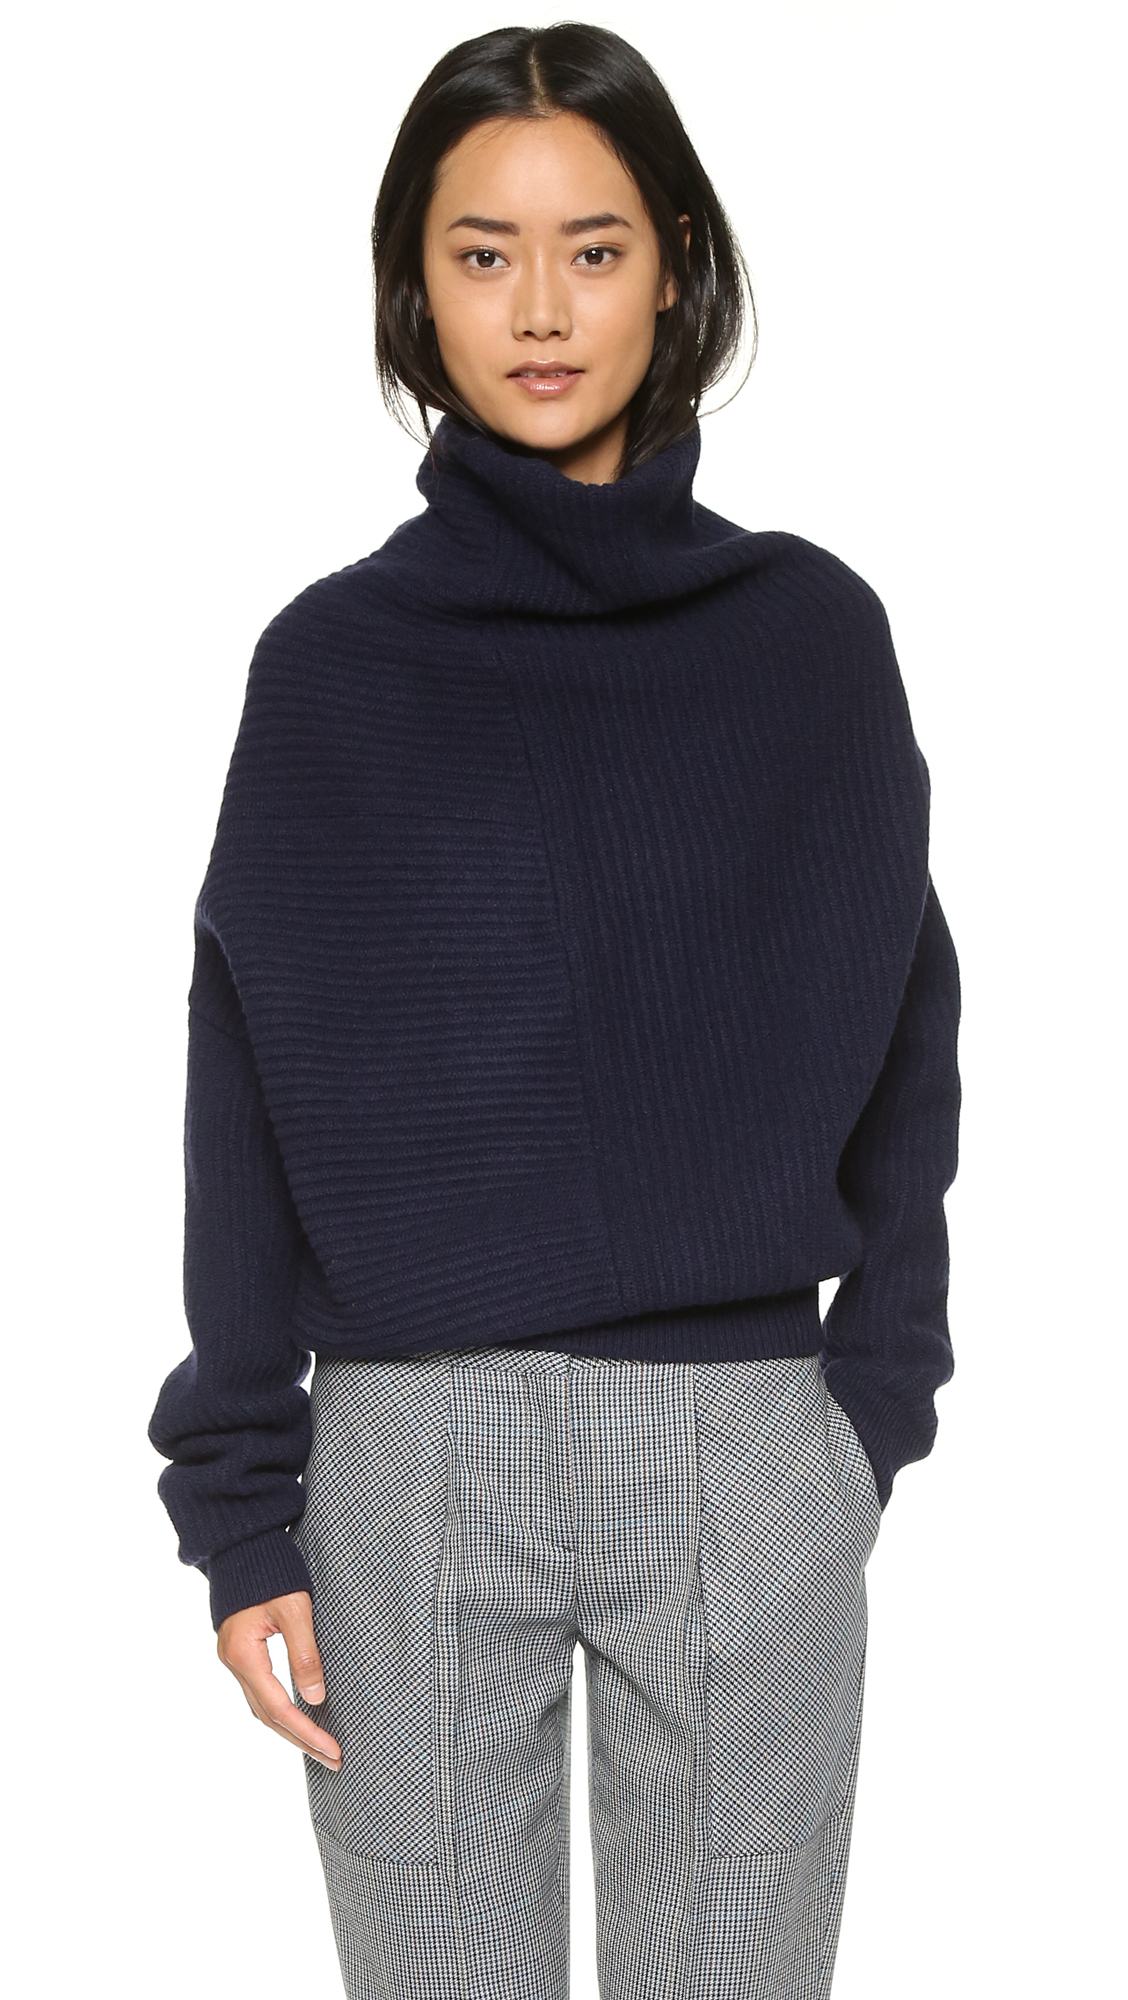 Acne studios Jacy L Ribbed Sweater - Dark Navy in Blue | Lyst